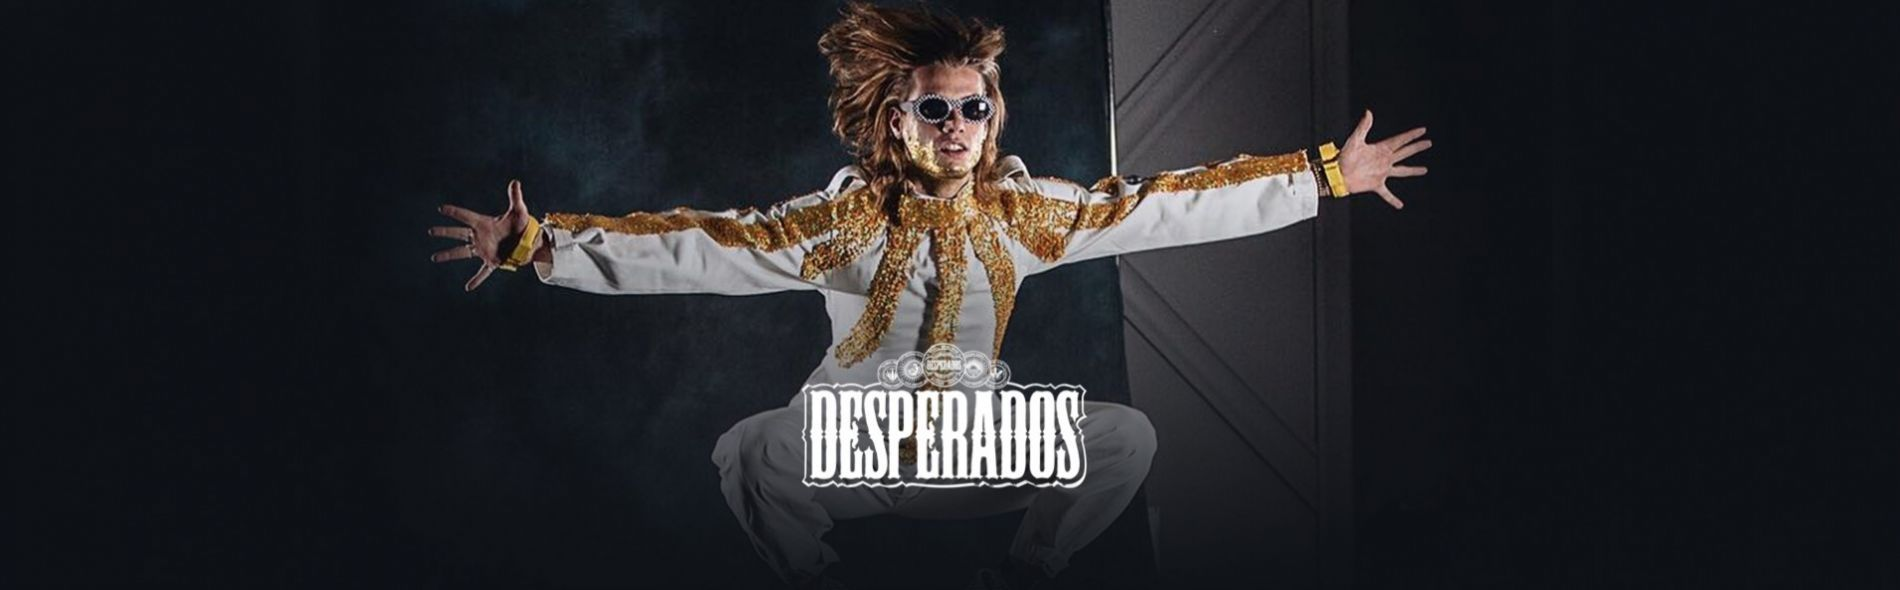 Tony Junior's Vegas trip with Desperados' 'Bass Drop Experiment'